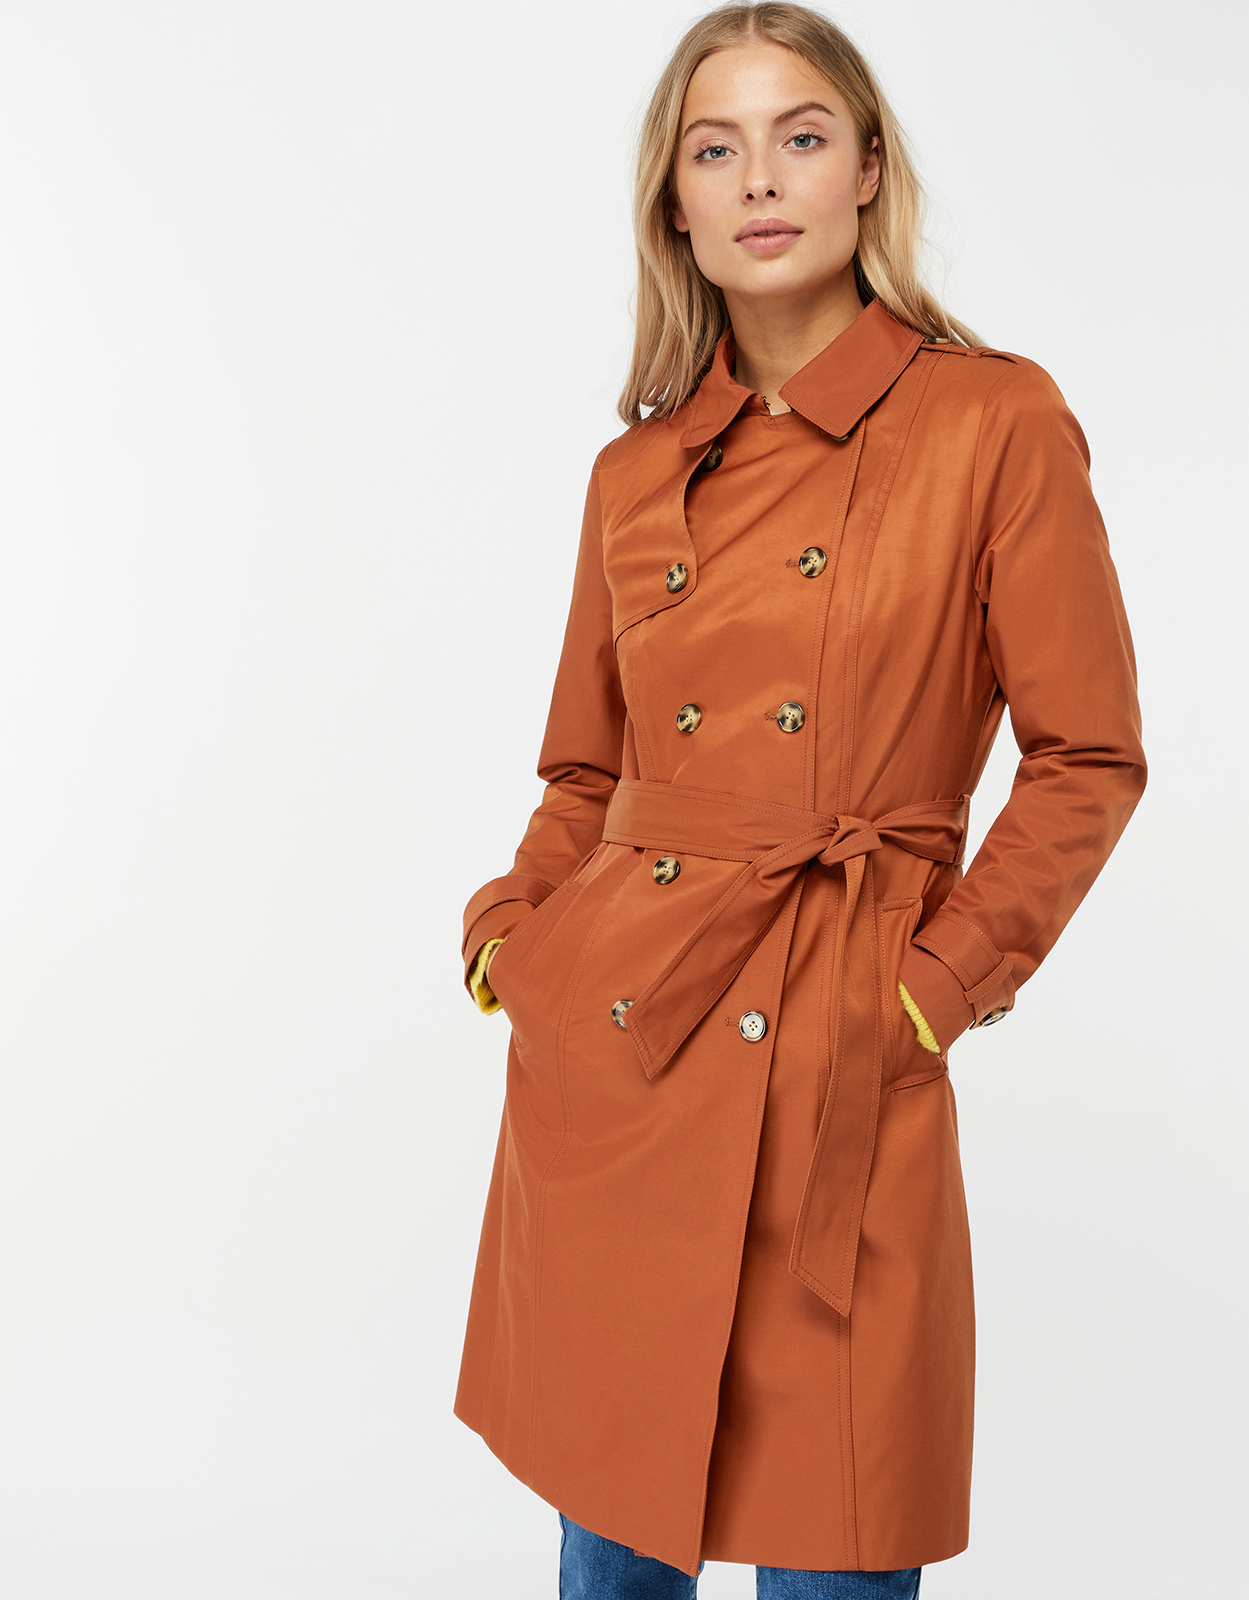 Monsoon Serena Trench Coat